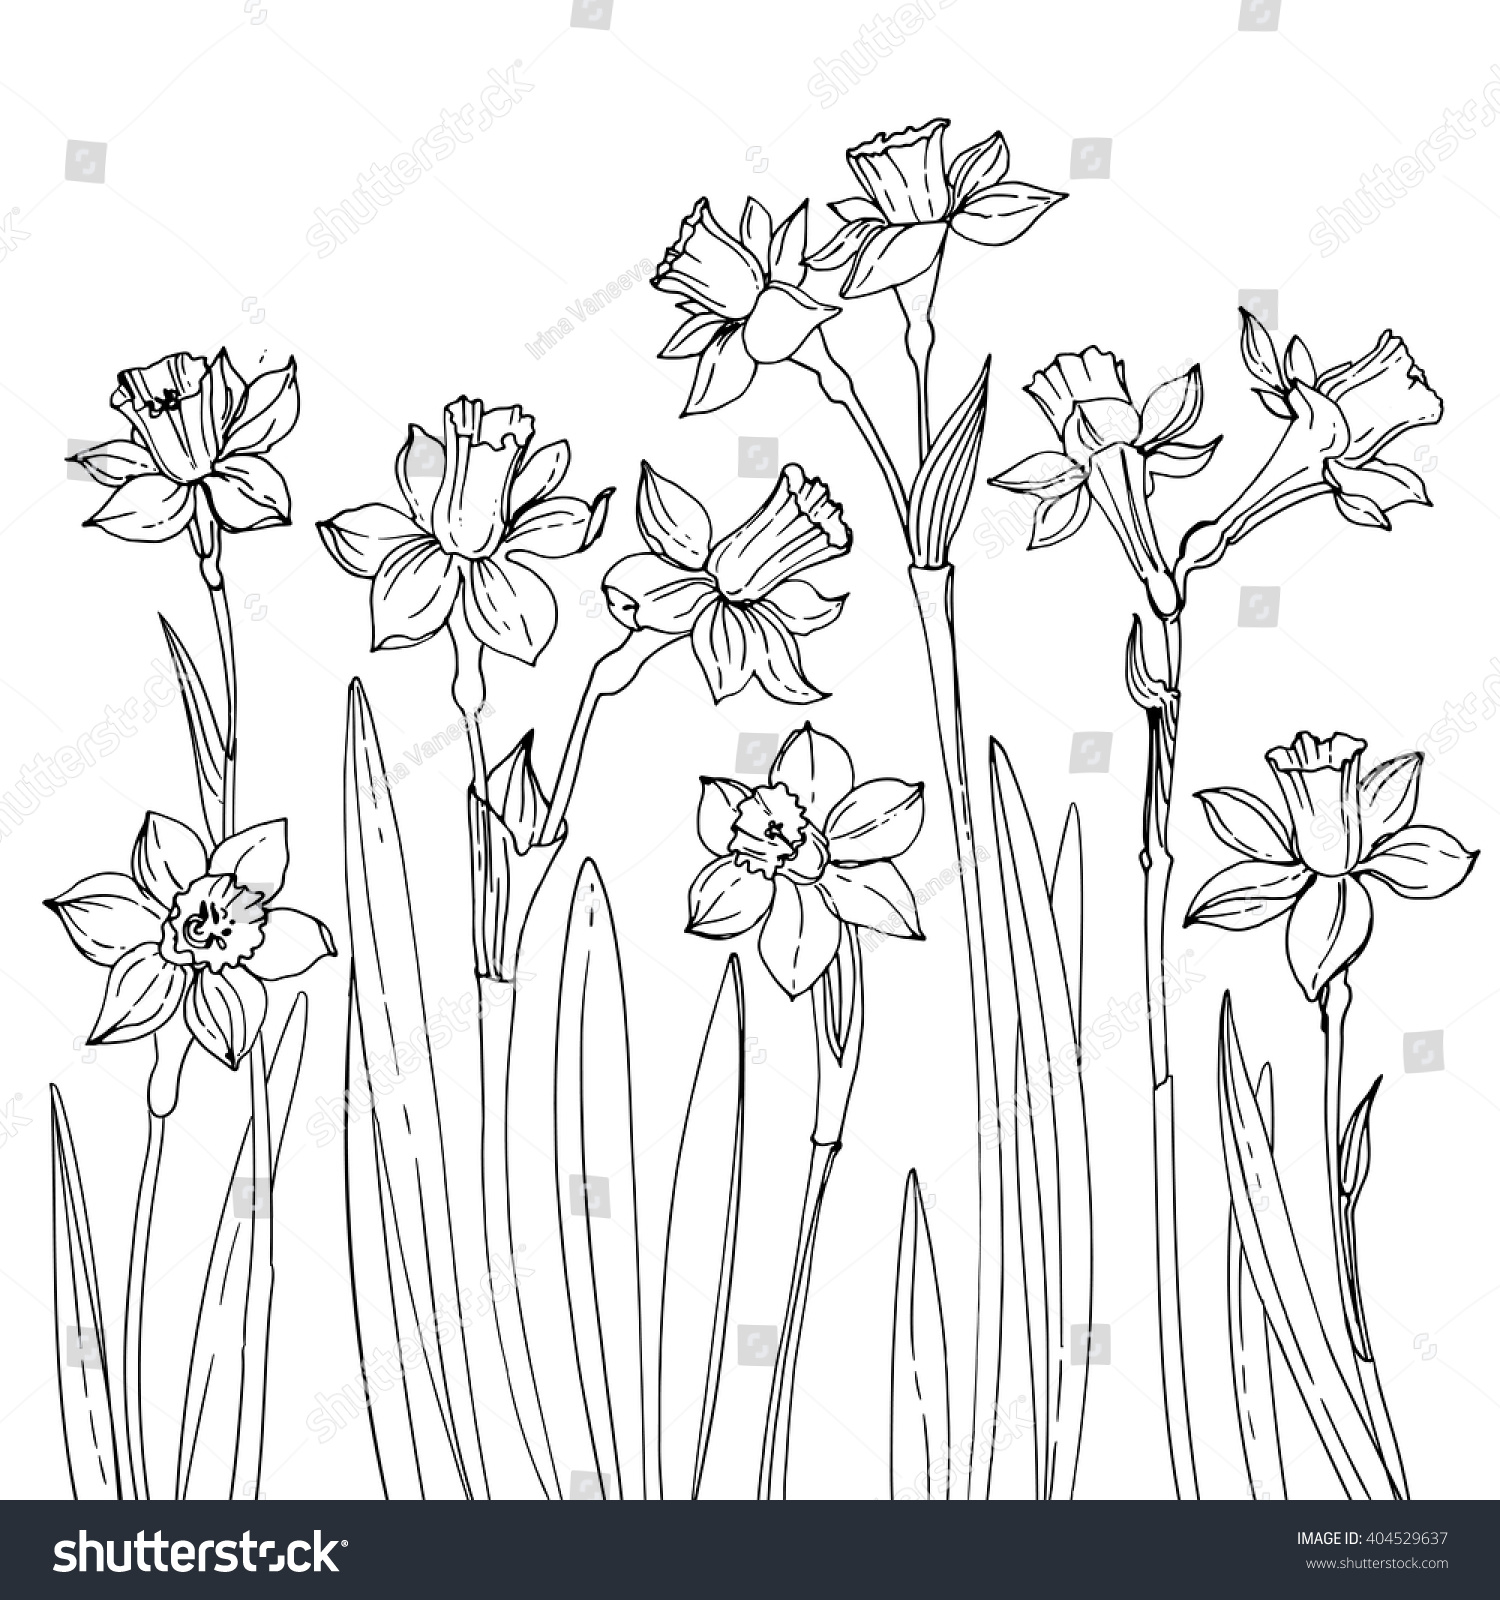 Line Drawing Spring Flowers : Set of vector drawings flowers daffodils line drawn on